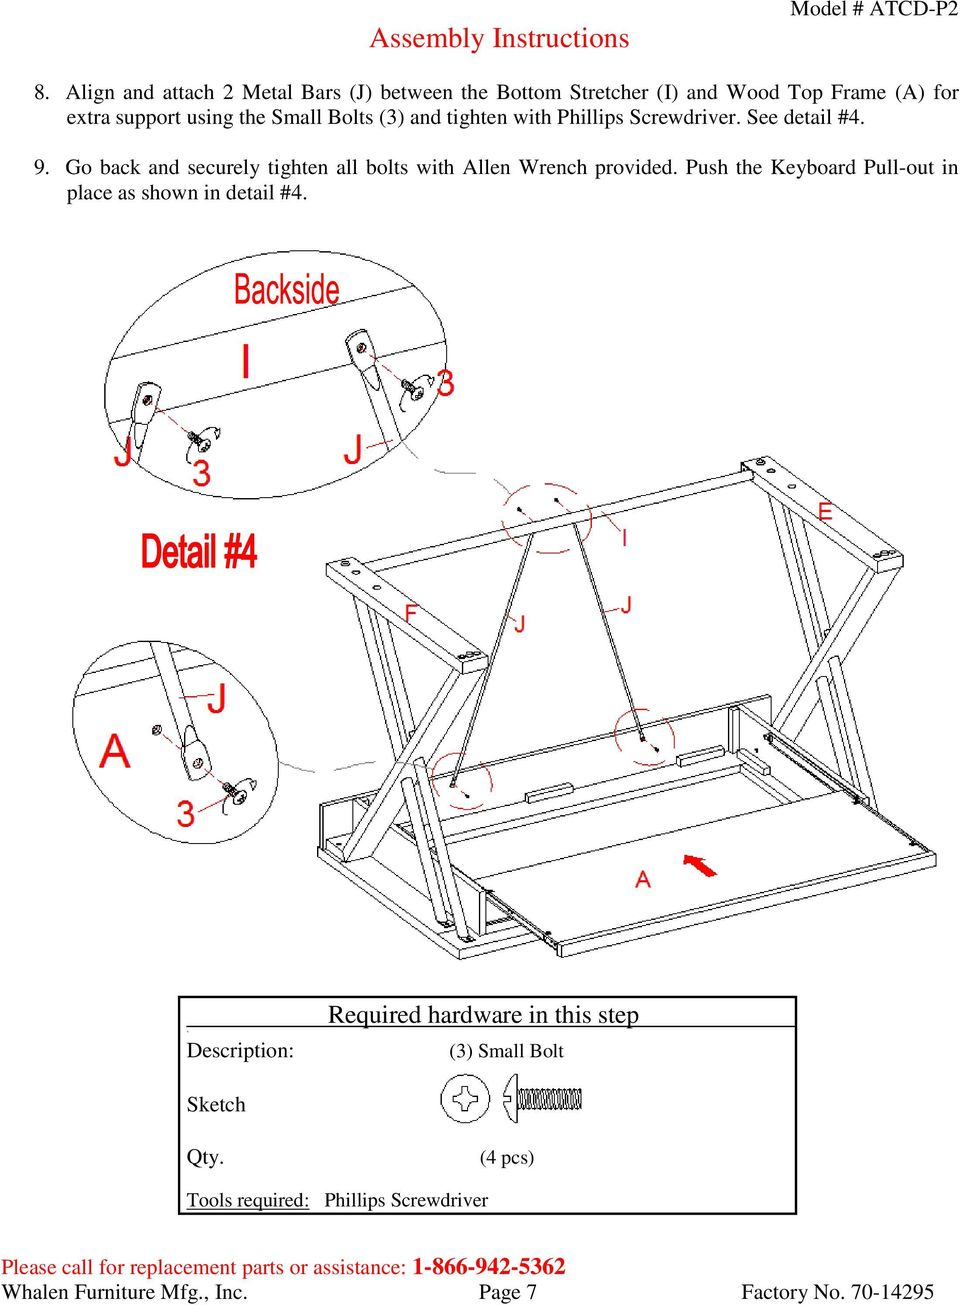 keyboard stand assembly instructions